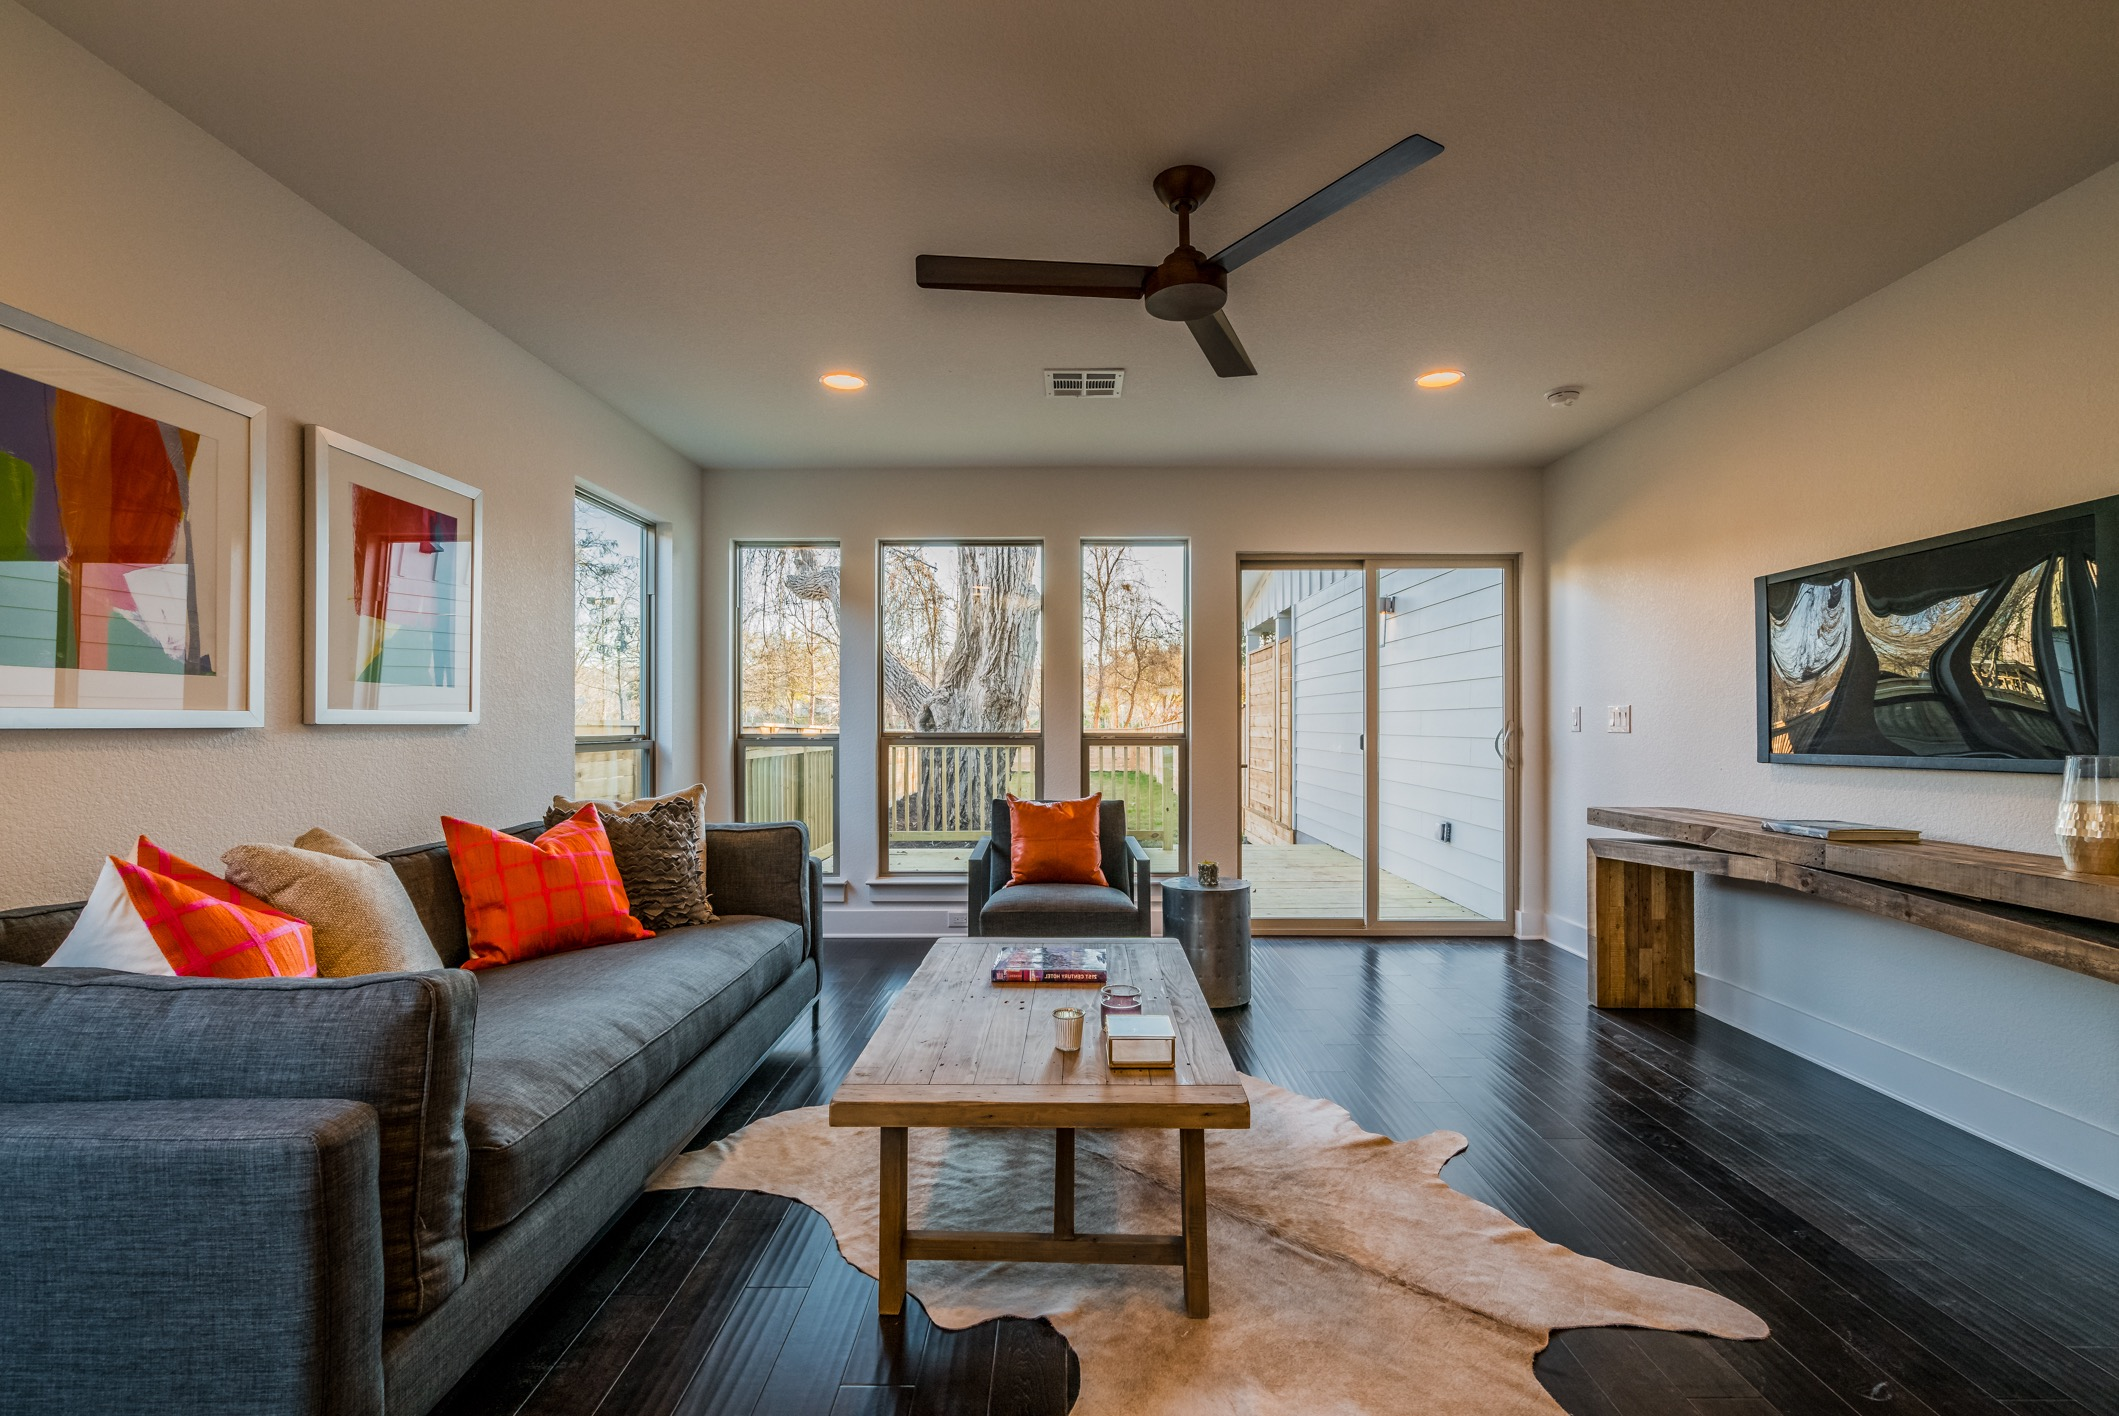 Windows And Sliding Glass Door Provide Backyard Access For Modern Living Room (View 12 of 13)